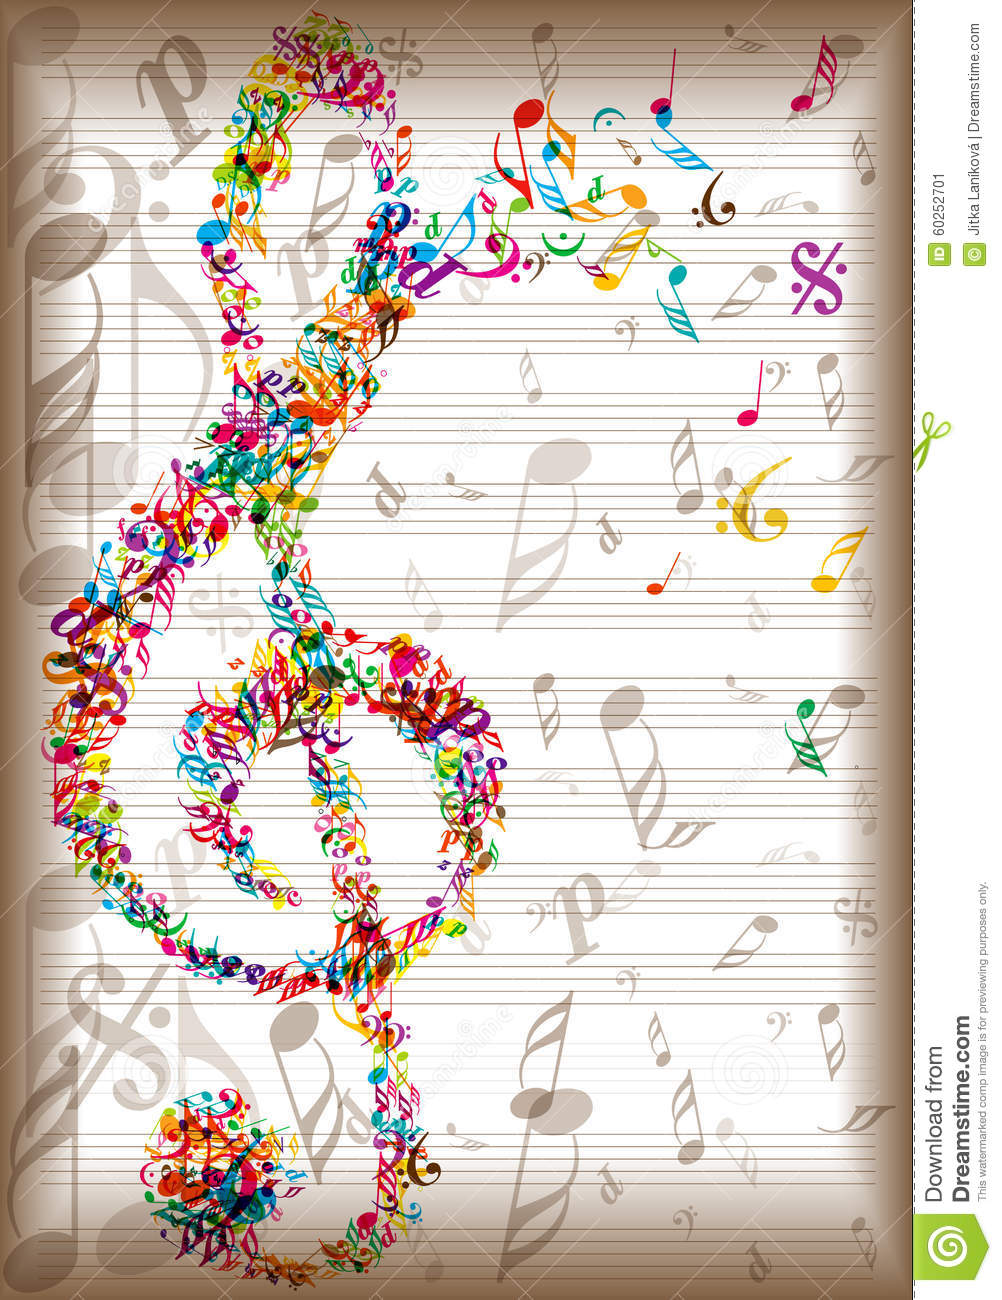 vintage music notes background stock vector image 60252701